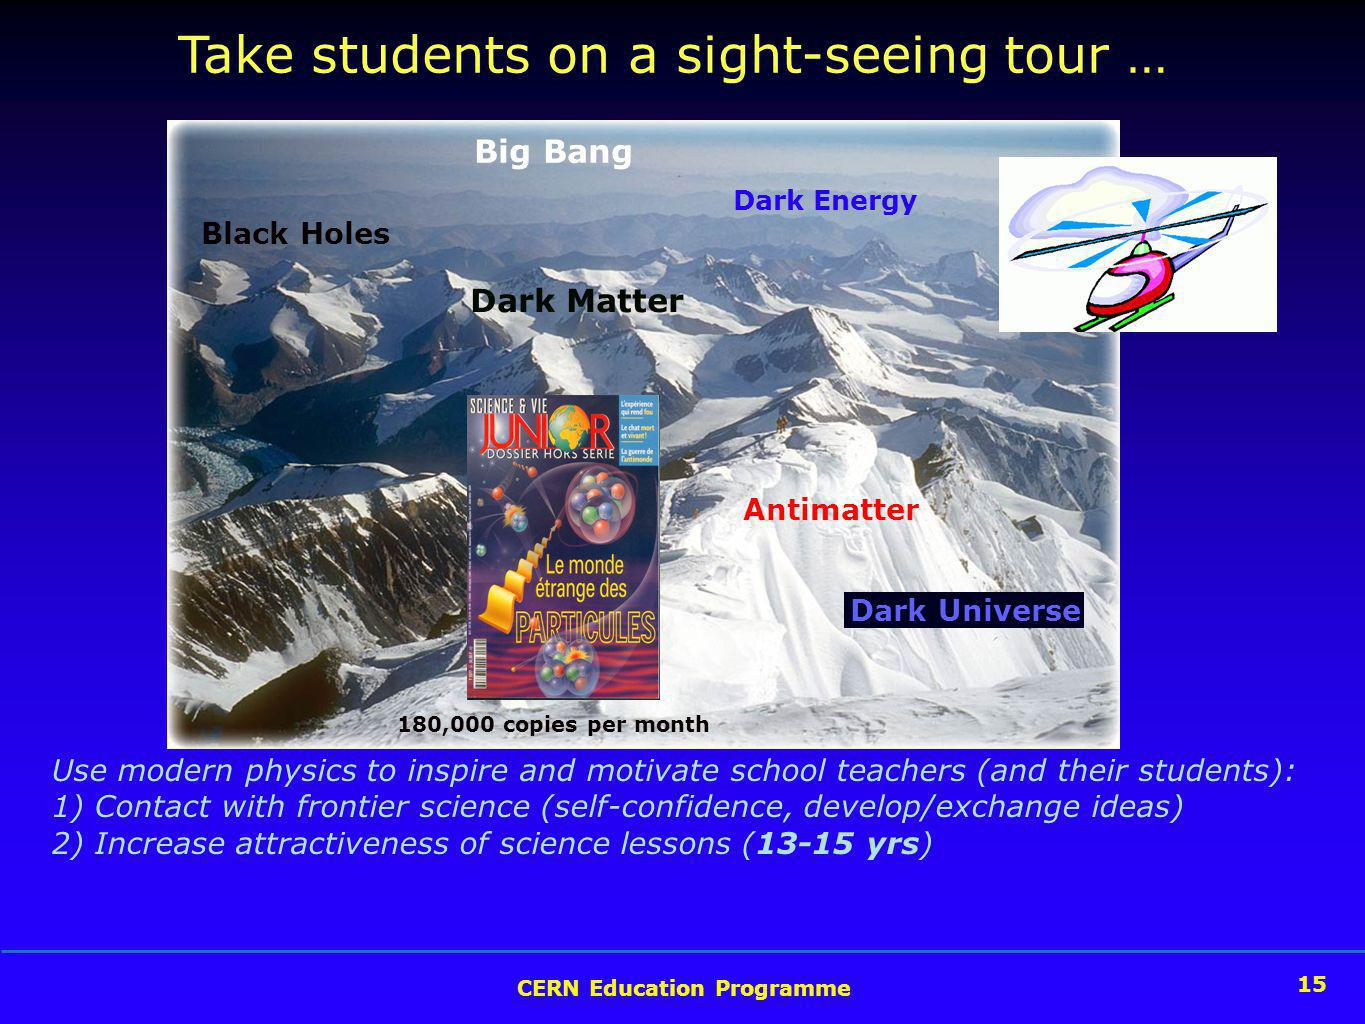 CERN Education Programme 15 Take students on a sight-seeing tour … Use modern physics to inspire and motivate school teachers (and their students): 1) Contact with frontier science (self-confidence, develop/exchange ideas) 2) Increase attractiveness of science lessons (13-15 yrs) Big Bang Antimatter Dark Matter Black Holes Dark Energy Dark Universe 180,000 copies per month